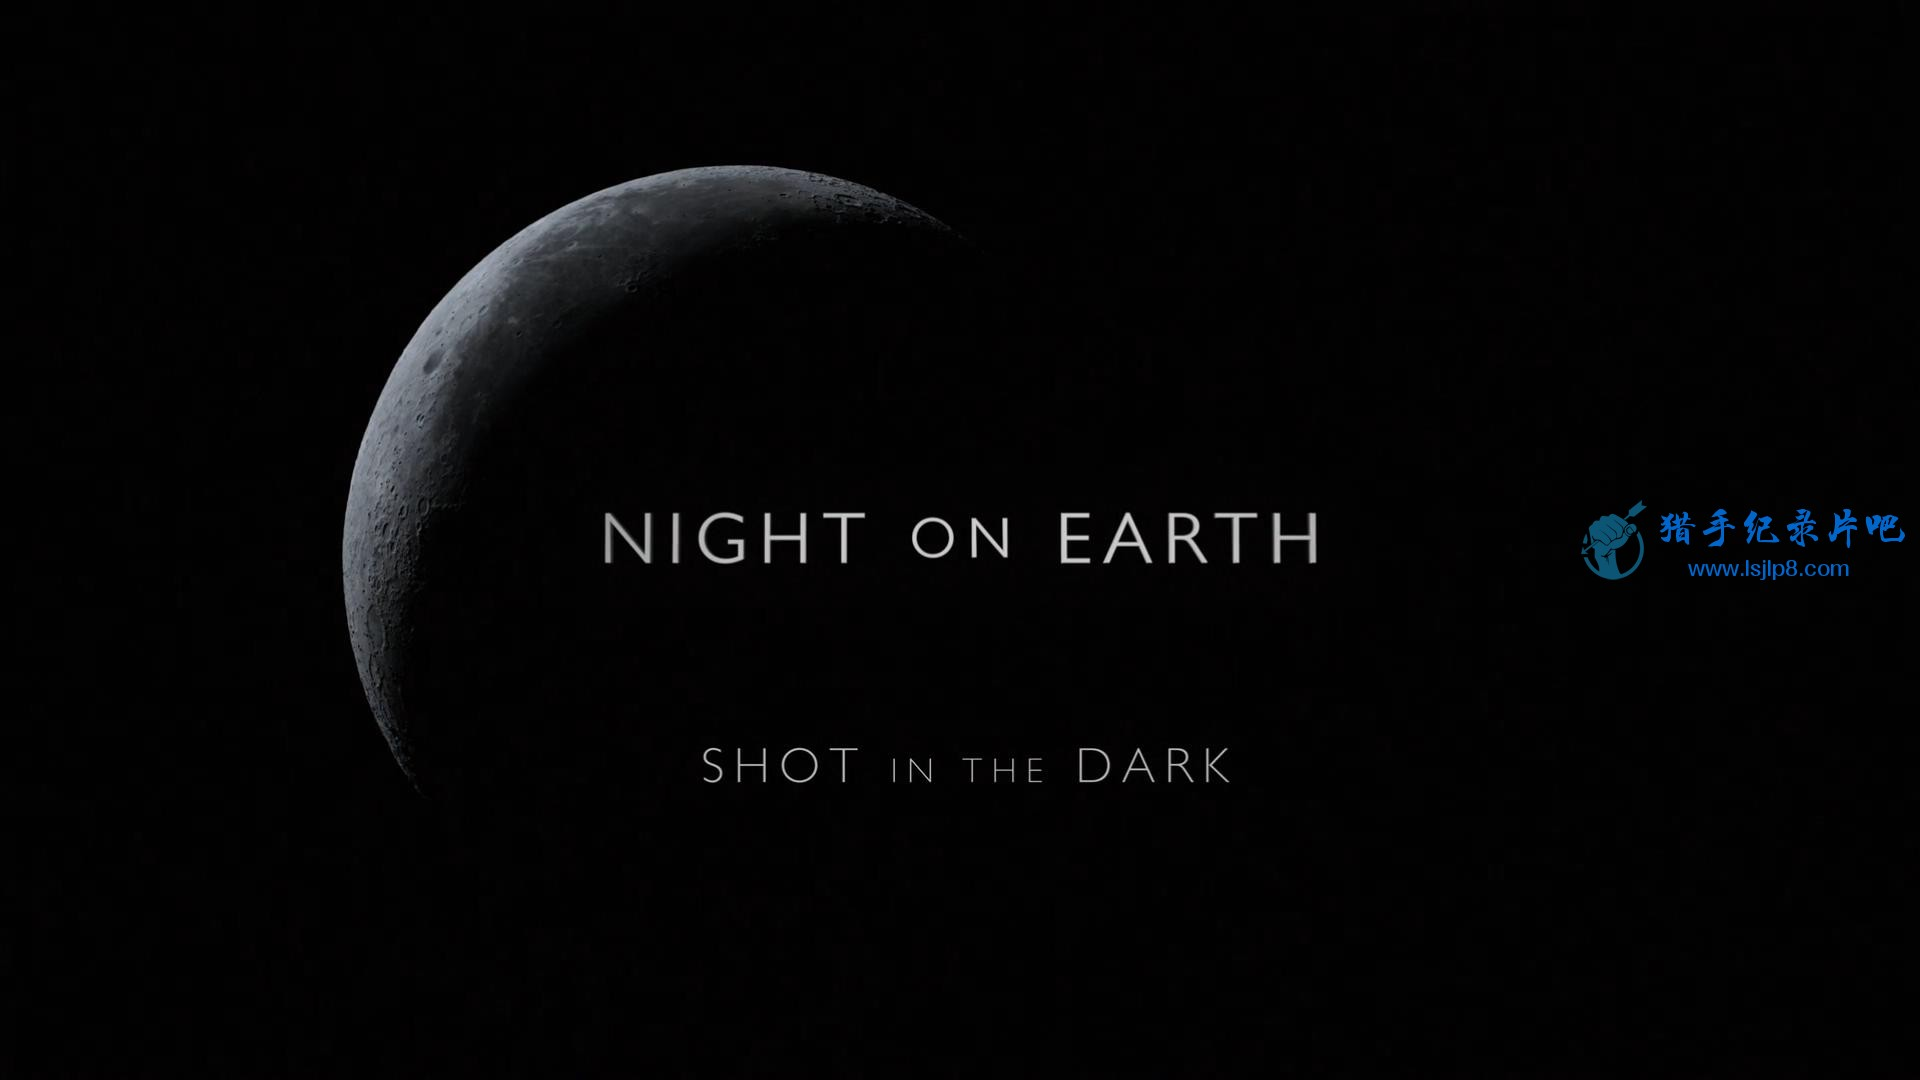 Night.on.Earth.S00E01.Shot.in.the.Dark.2020.1080p.NF.WEB-DL.DDP5.1.x264-NTG.mkv_.jpg